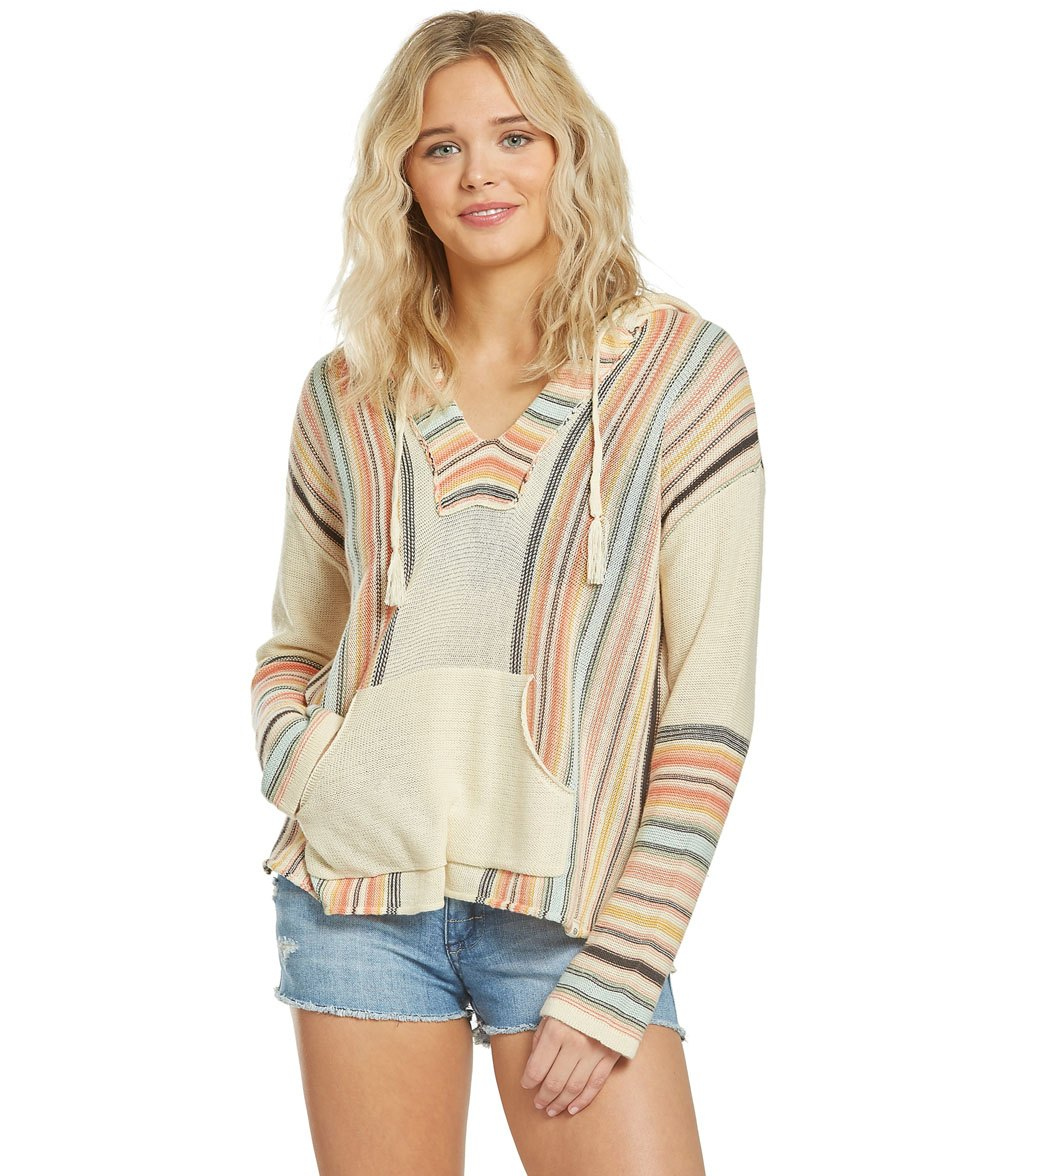 0e102f6b10 Rip Curl Windswept Pullover Poncho at SwimOutlet.com - Free Shipping